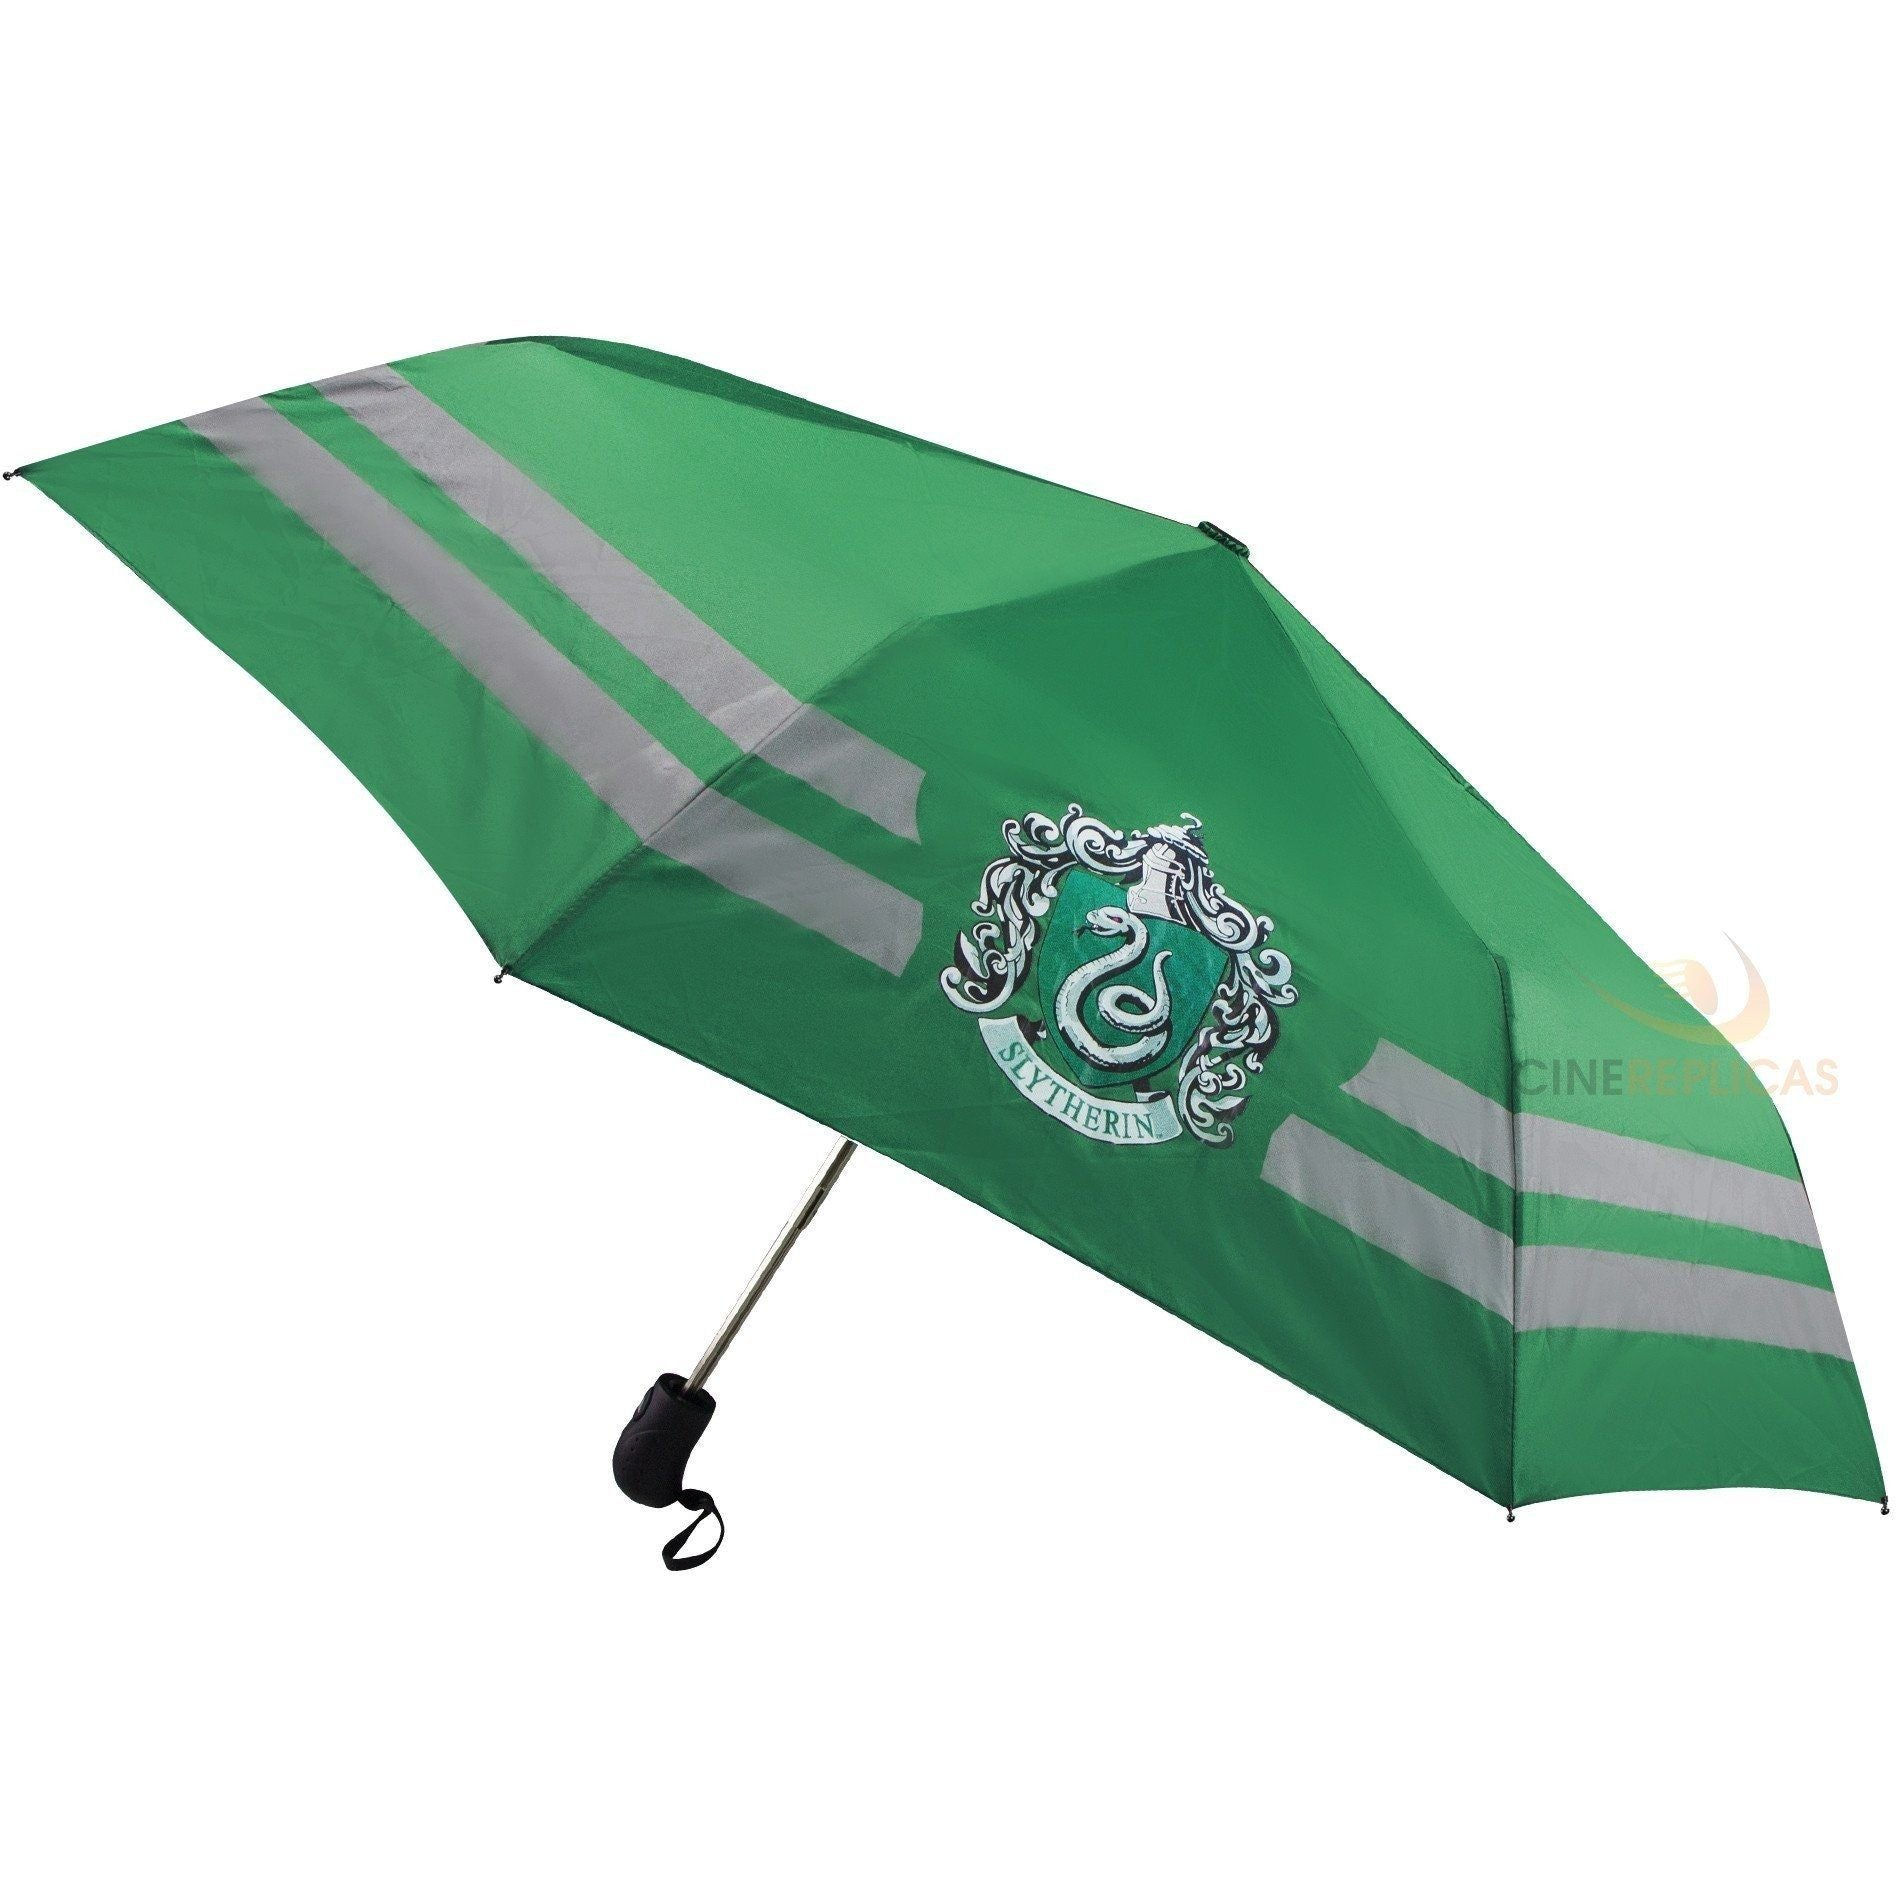 PARAPLUIE SERPENTARD - HARRY POTTER